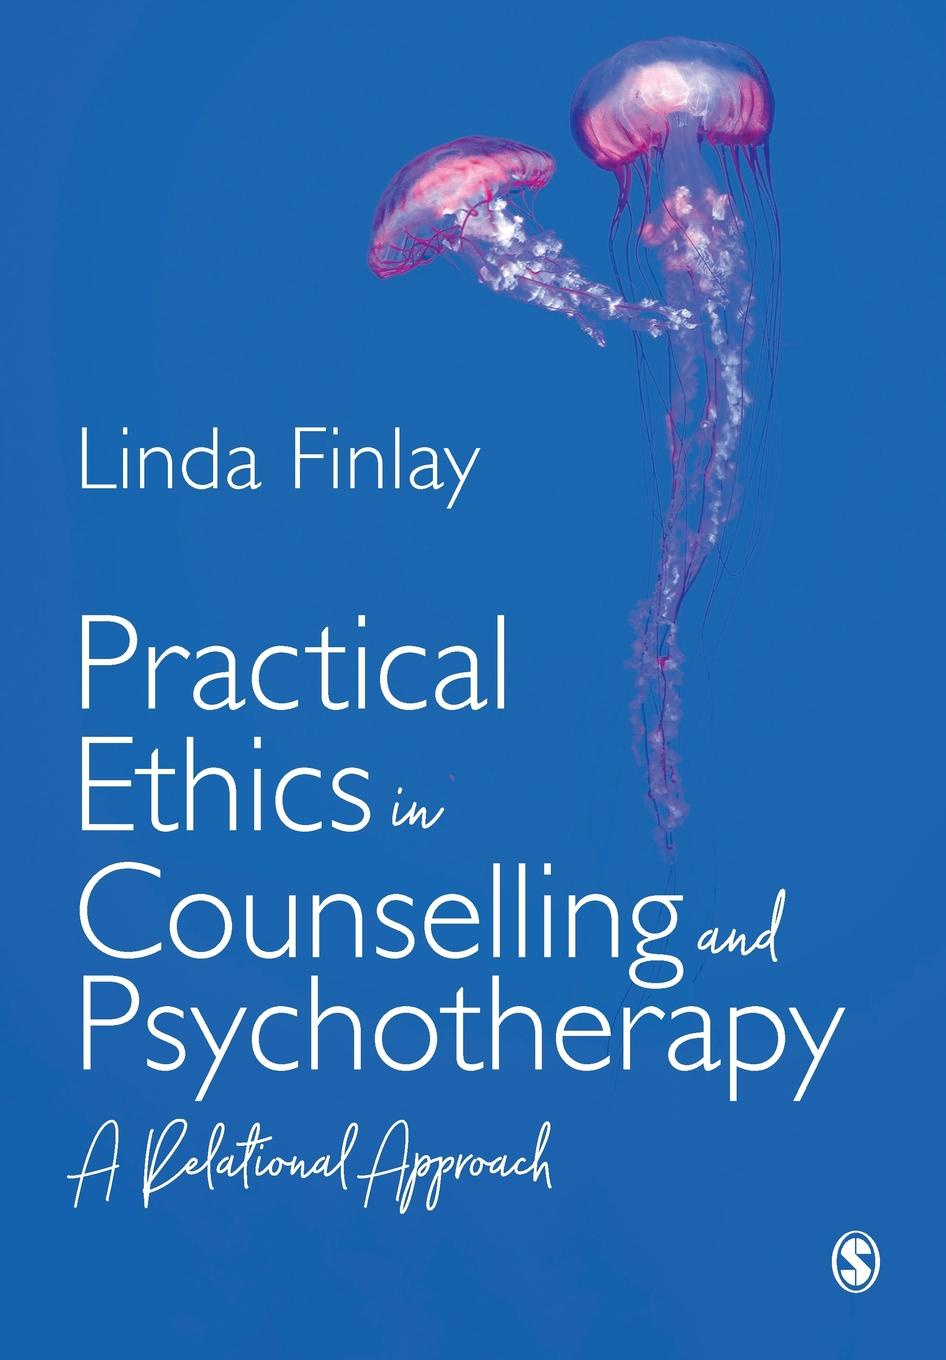 лучшая цена Linda Finlay Practical Ethics in Counselling and Psychotherapy. A Relational Approach